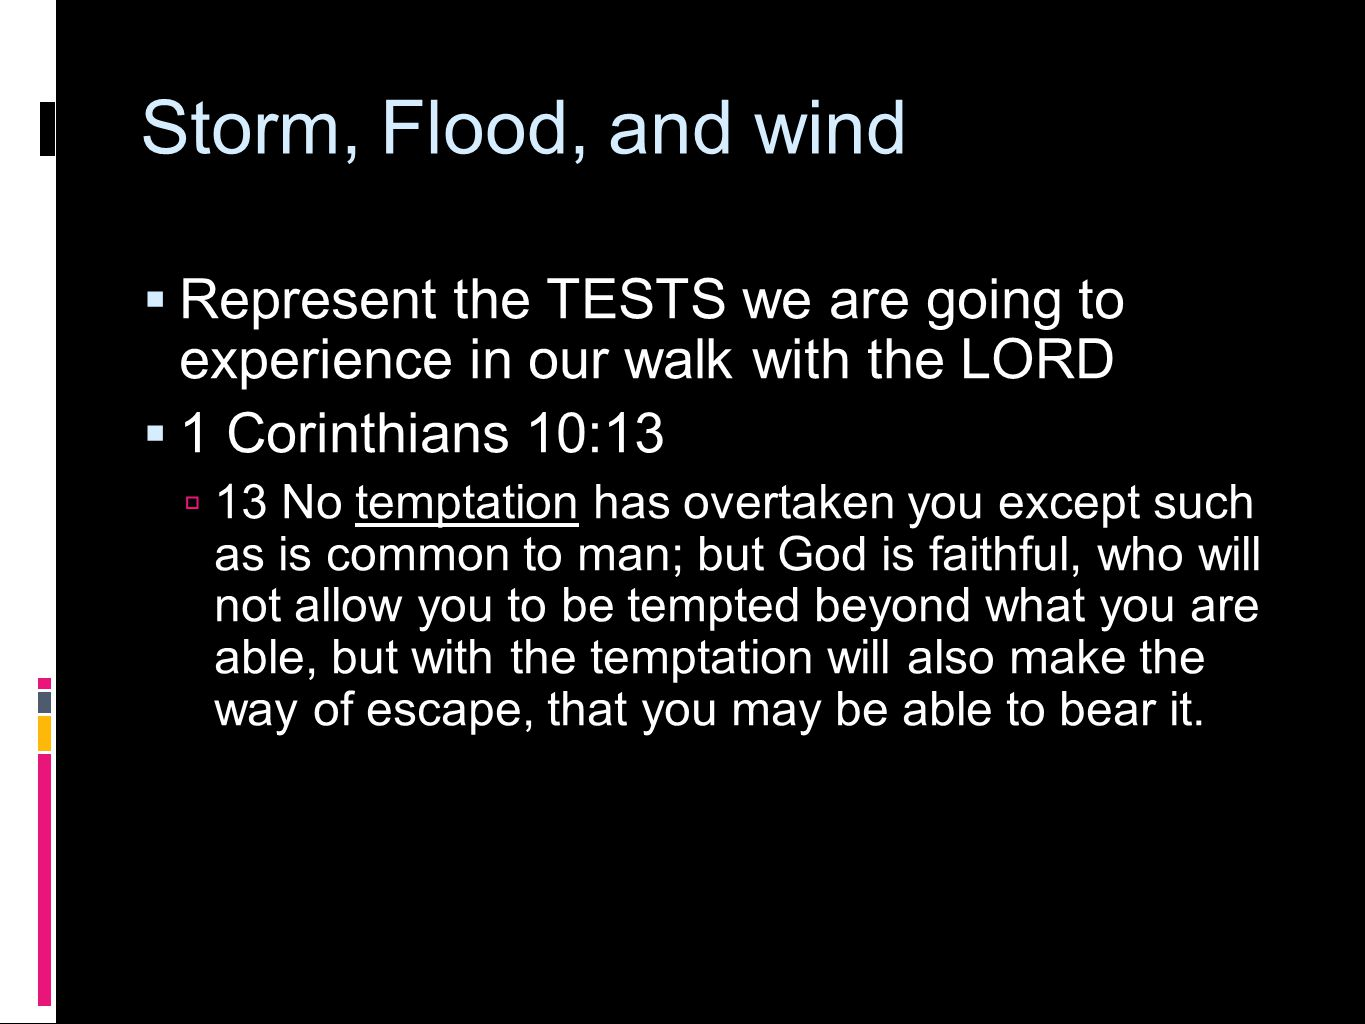 Storm, Flood, and wind  Represent the TESTS we are going to experience in our walk with the LORD  1 Corinthians 10:13  13 No temptation has overtak